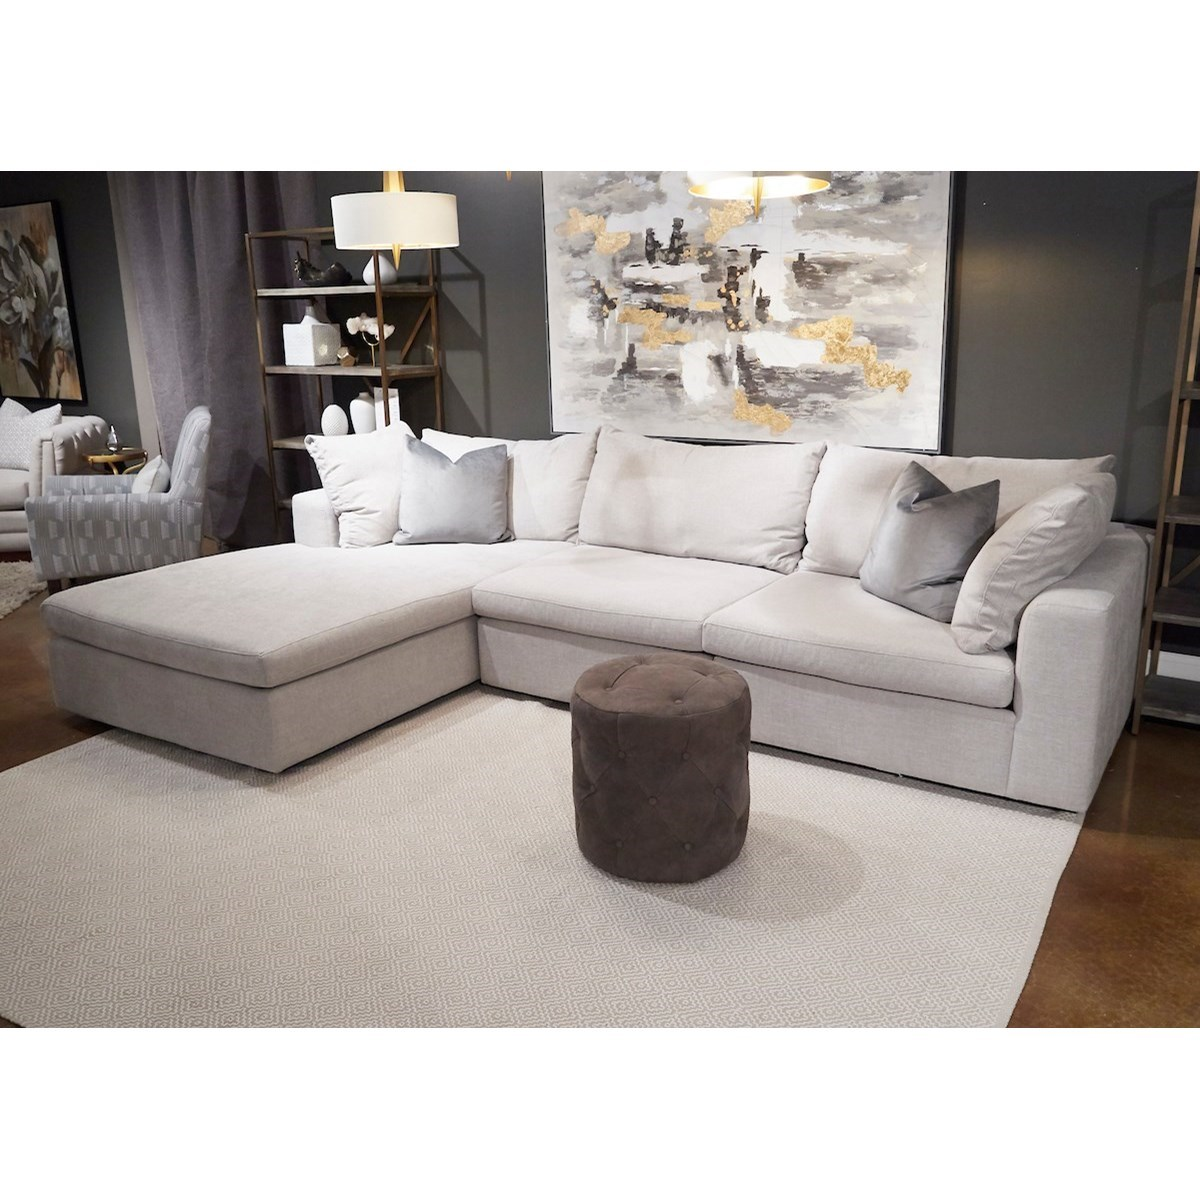 Arnell 3-Seat Sectional Sofa w/ LAF Chaise by Klaussner at Catalog Outlet